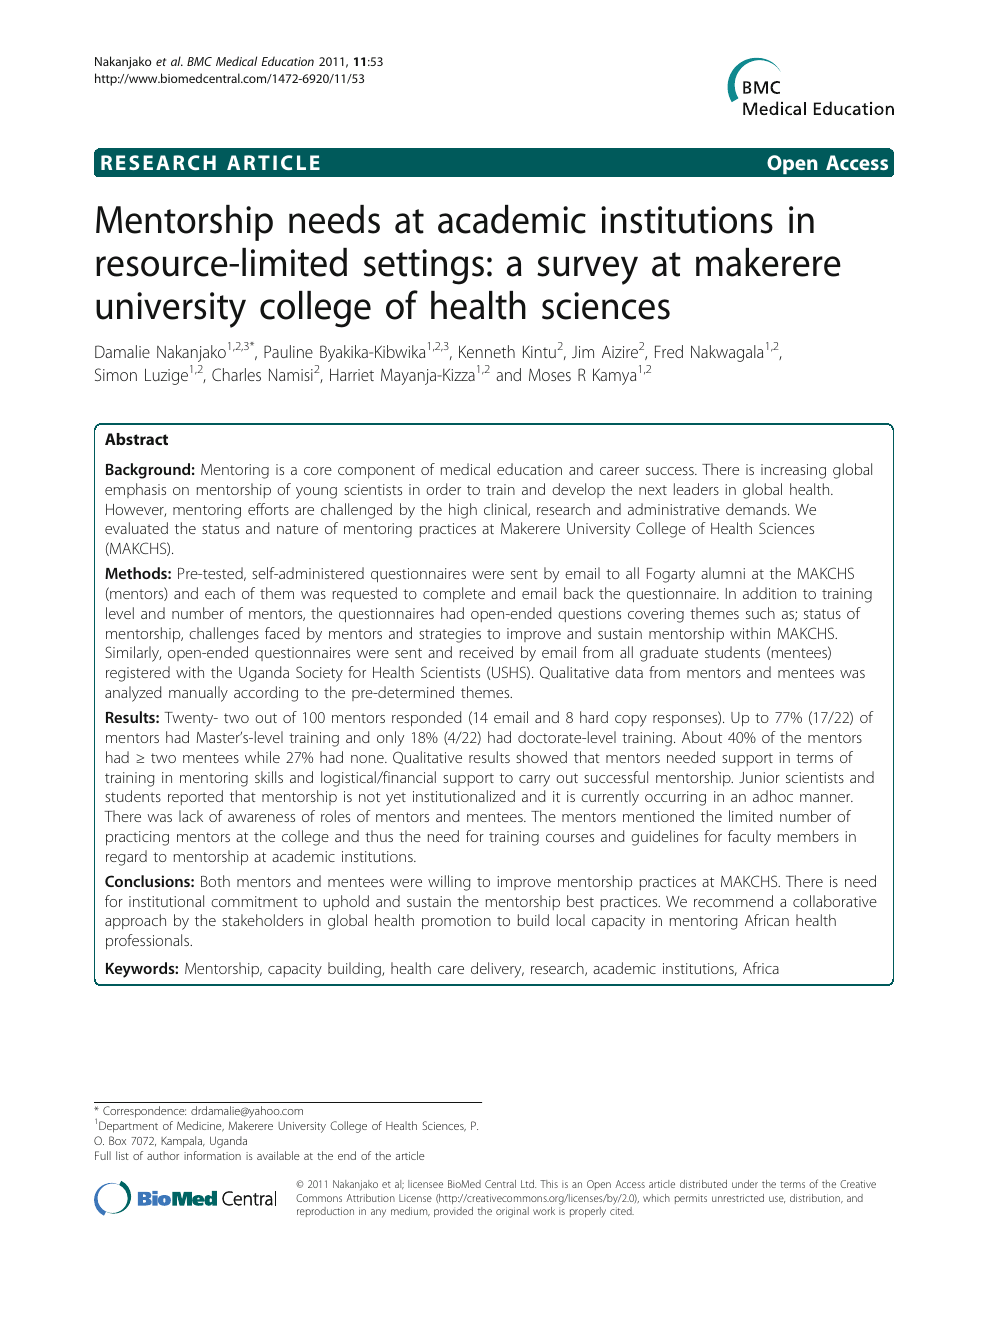 Mentorship needs at academic institutions in resource